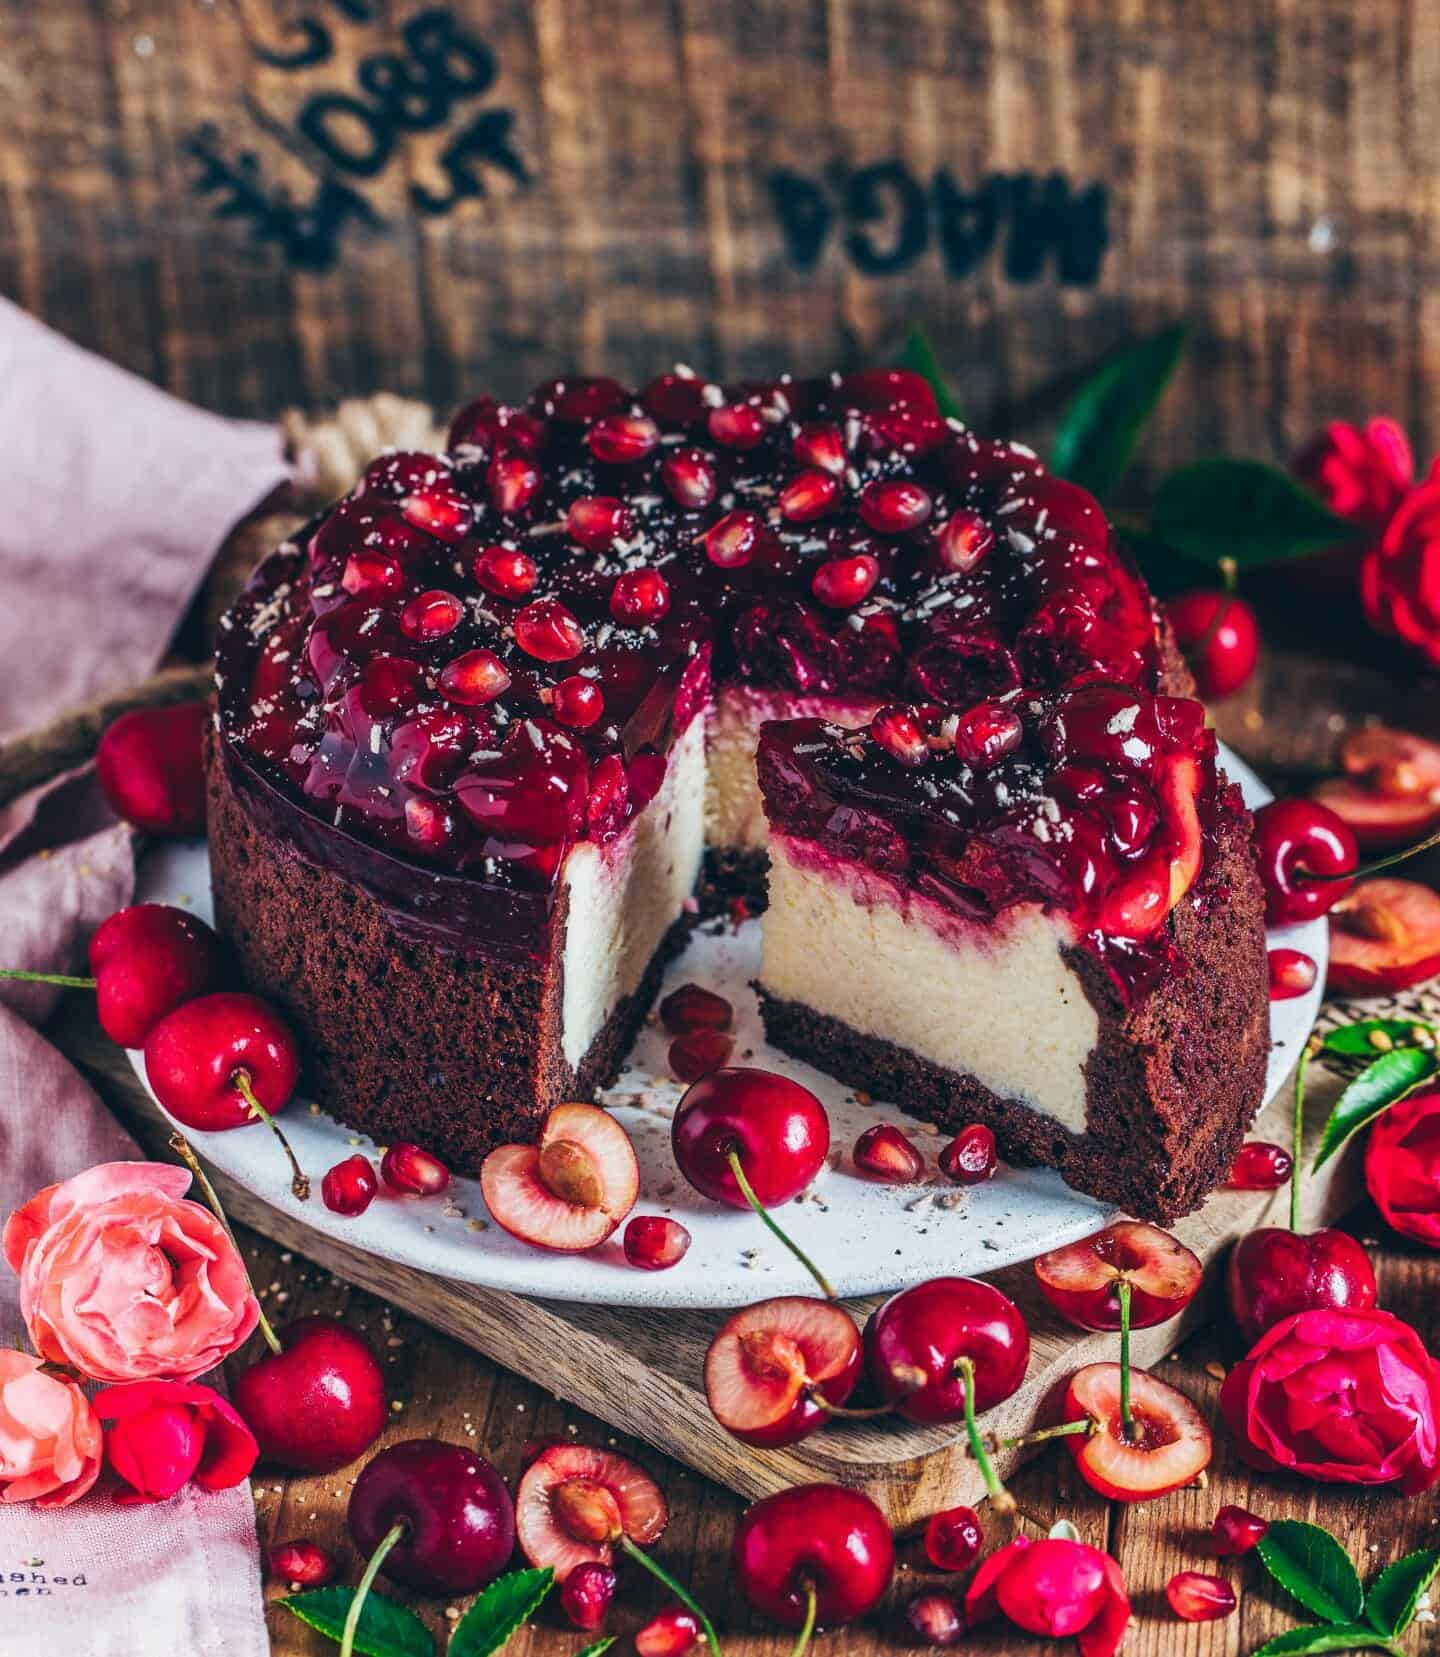 This baked vegan cheesecake with cherries and chocolate crust is a delicious refreshing light cake with a wonderfully creamy filling and juicy topping. Freshly chilled from the fridge, it's a perfect dessert for warm summer days. This cake is easy to make and dairy-free.